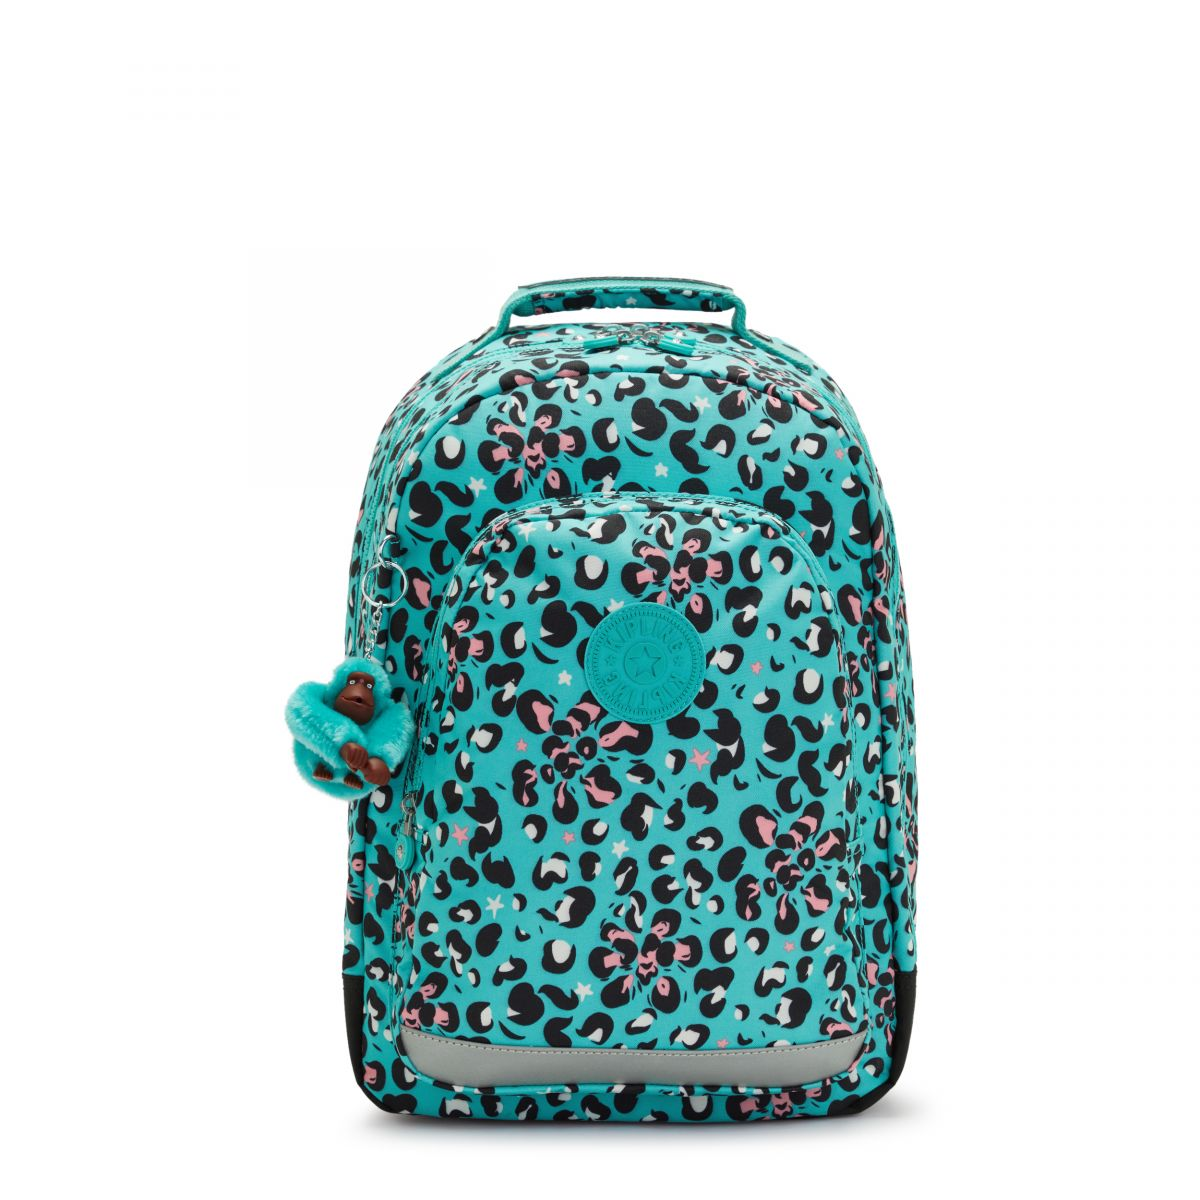 CLASS ROOM SCHOOL BAGS by Kipling - Front view